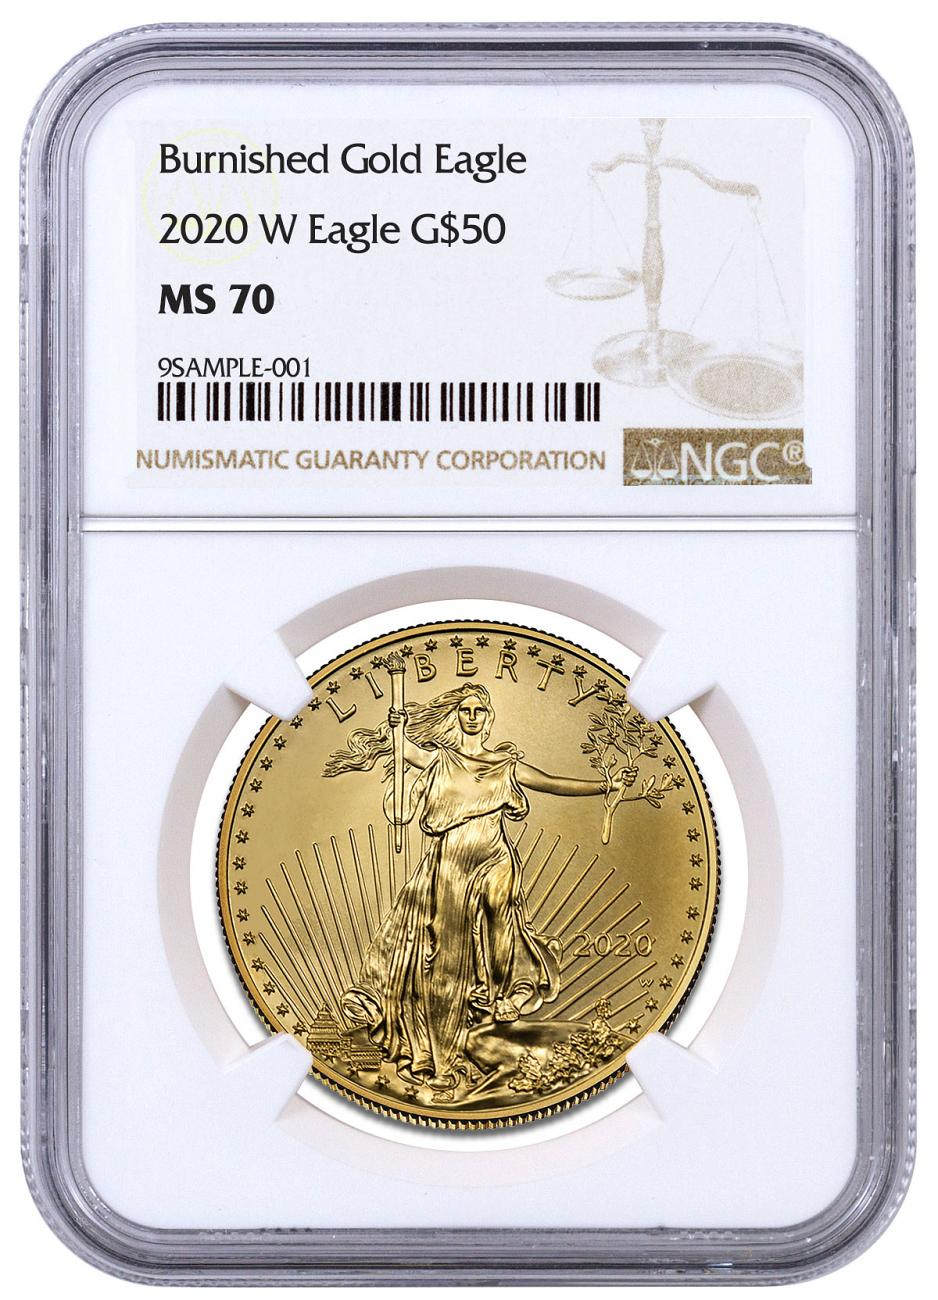 2020-W 1 oz Burnished Gold American Eagle $50 NGC MS70 Brown Label